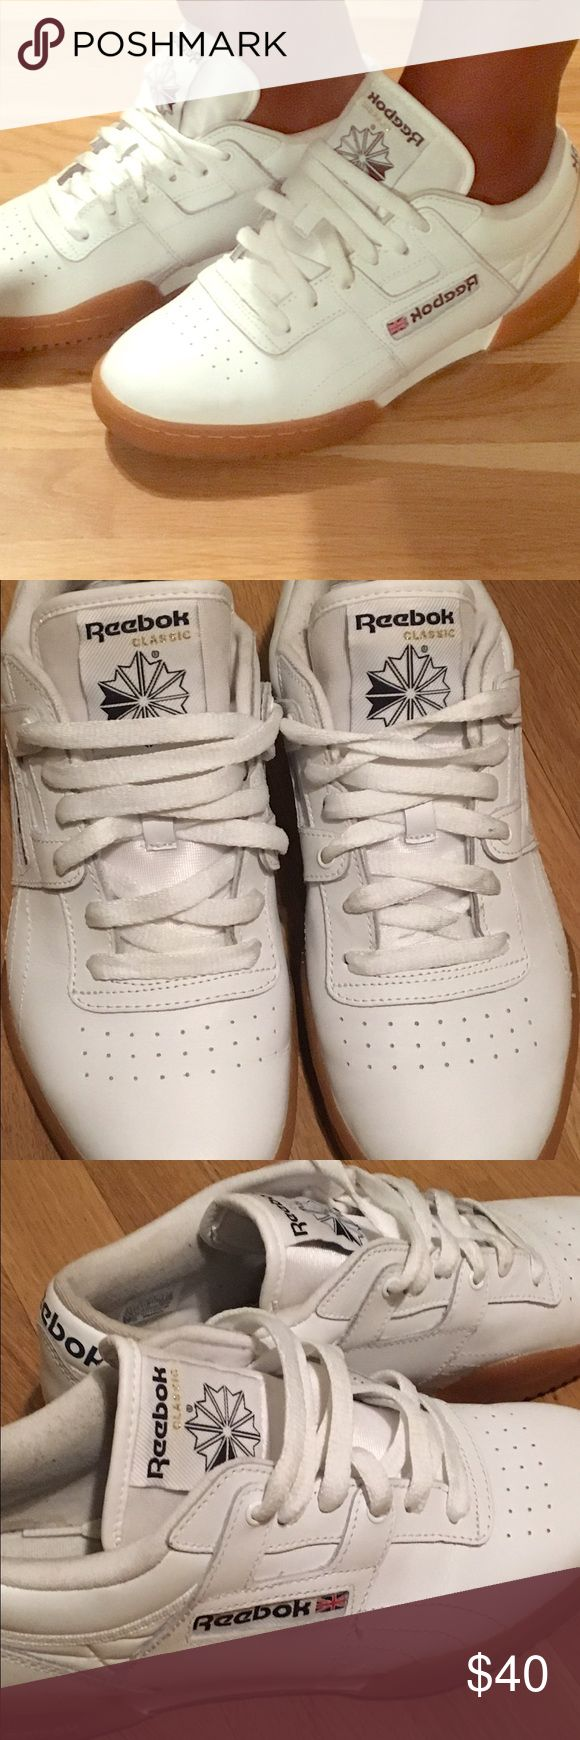 Reebok Classic with rubber sole. All white reebok classic low tops with rubber sole. They're too snug on my feet. Size 6 in kids (boys). Great condition! Reebok Shoes Sneakers